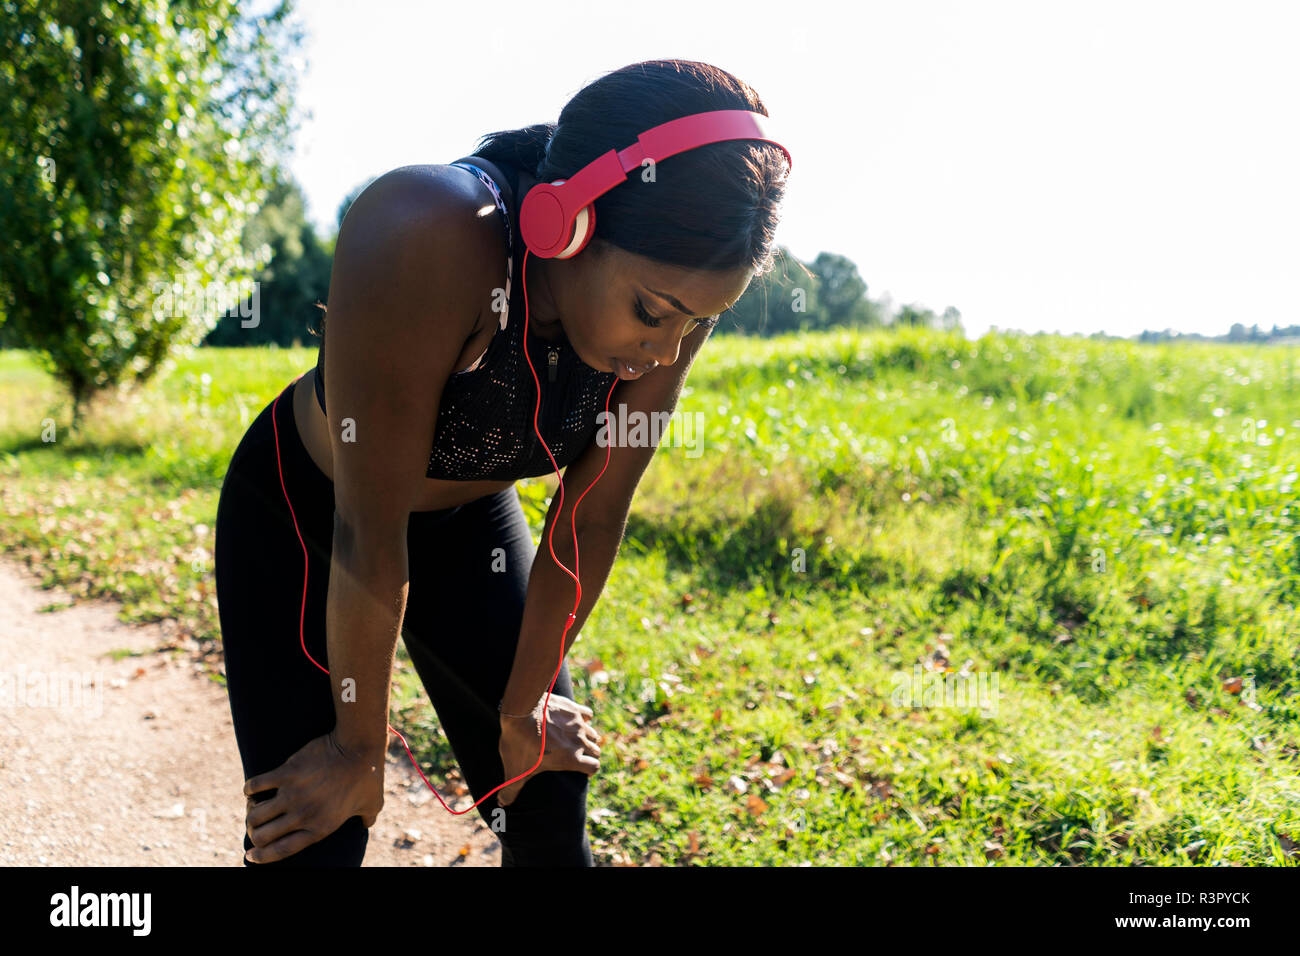 Young athlete in nature, listening music with headphones, preparing for training - Stock Image